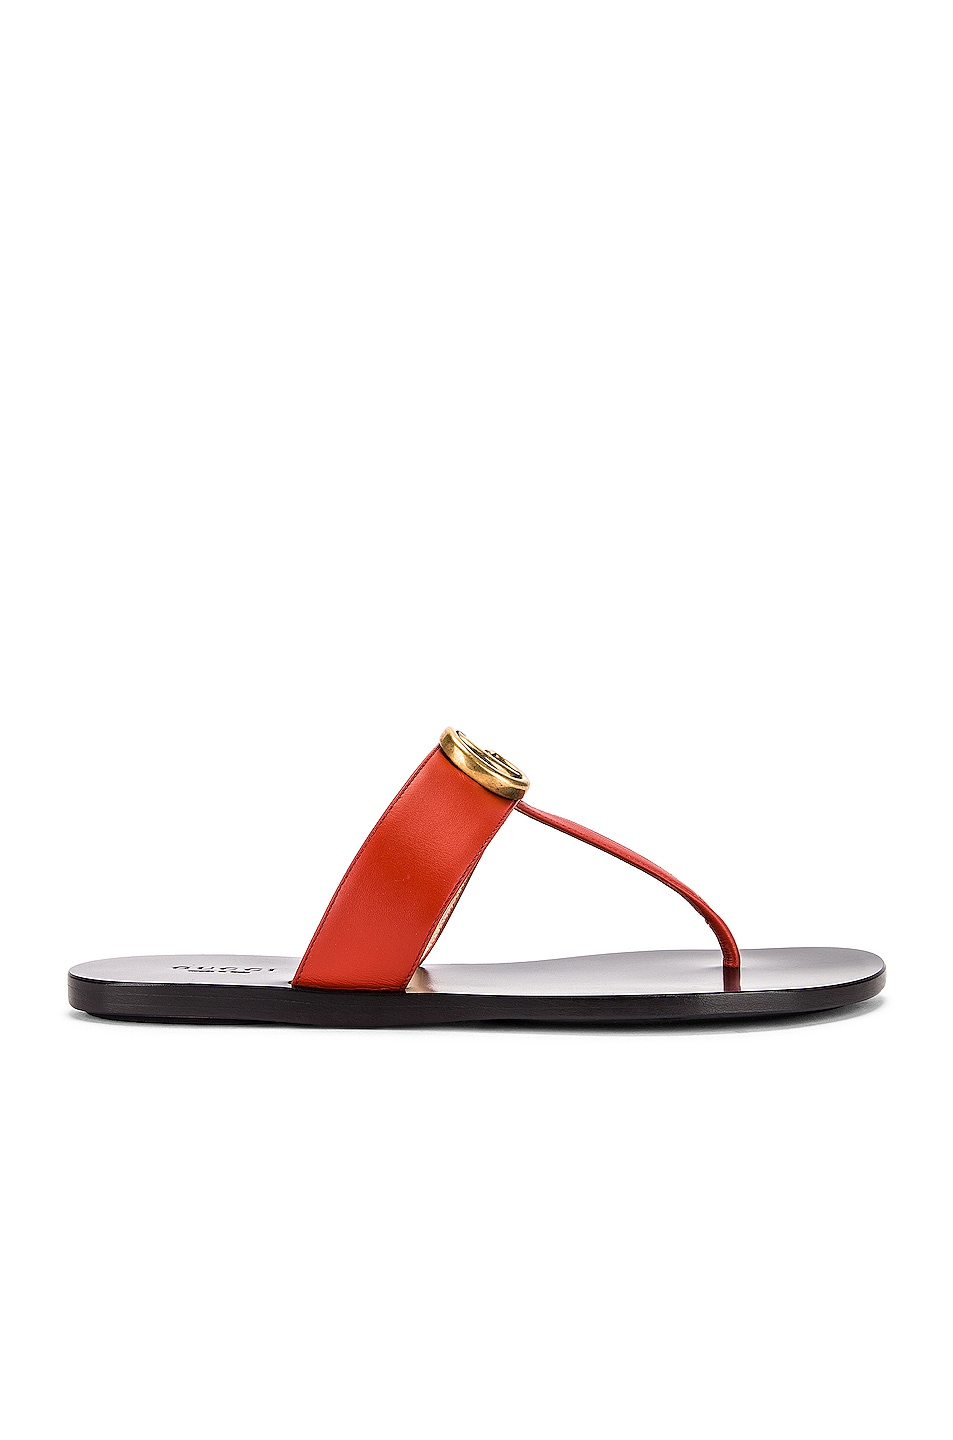 Image 2 of Gucci Double G Leather Thong Sandals in Bright Pumpkin